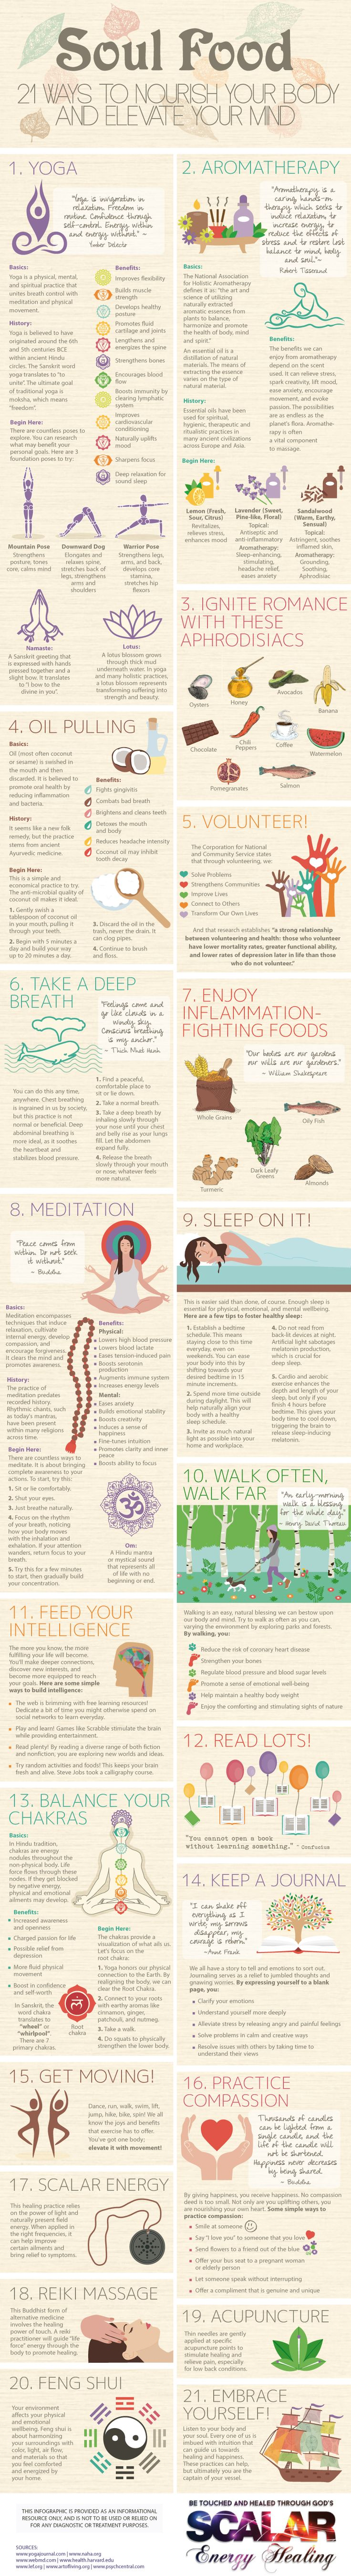 Soul Food: 21 Ways to Nourish Your Body and Elevate Your Mind  [by SelfHealGo -- via #tipsographic]. More at tipsographic.com